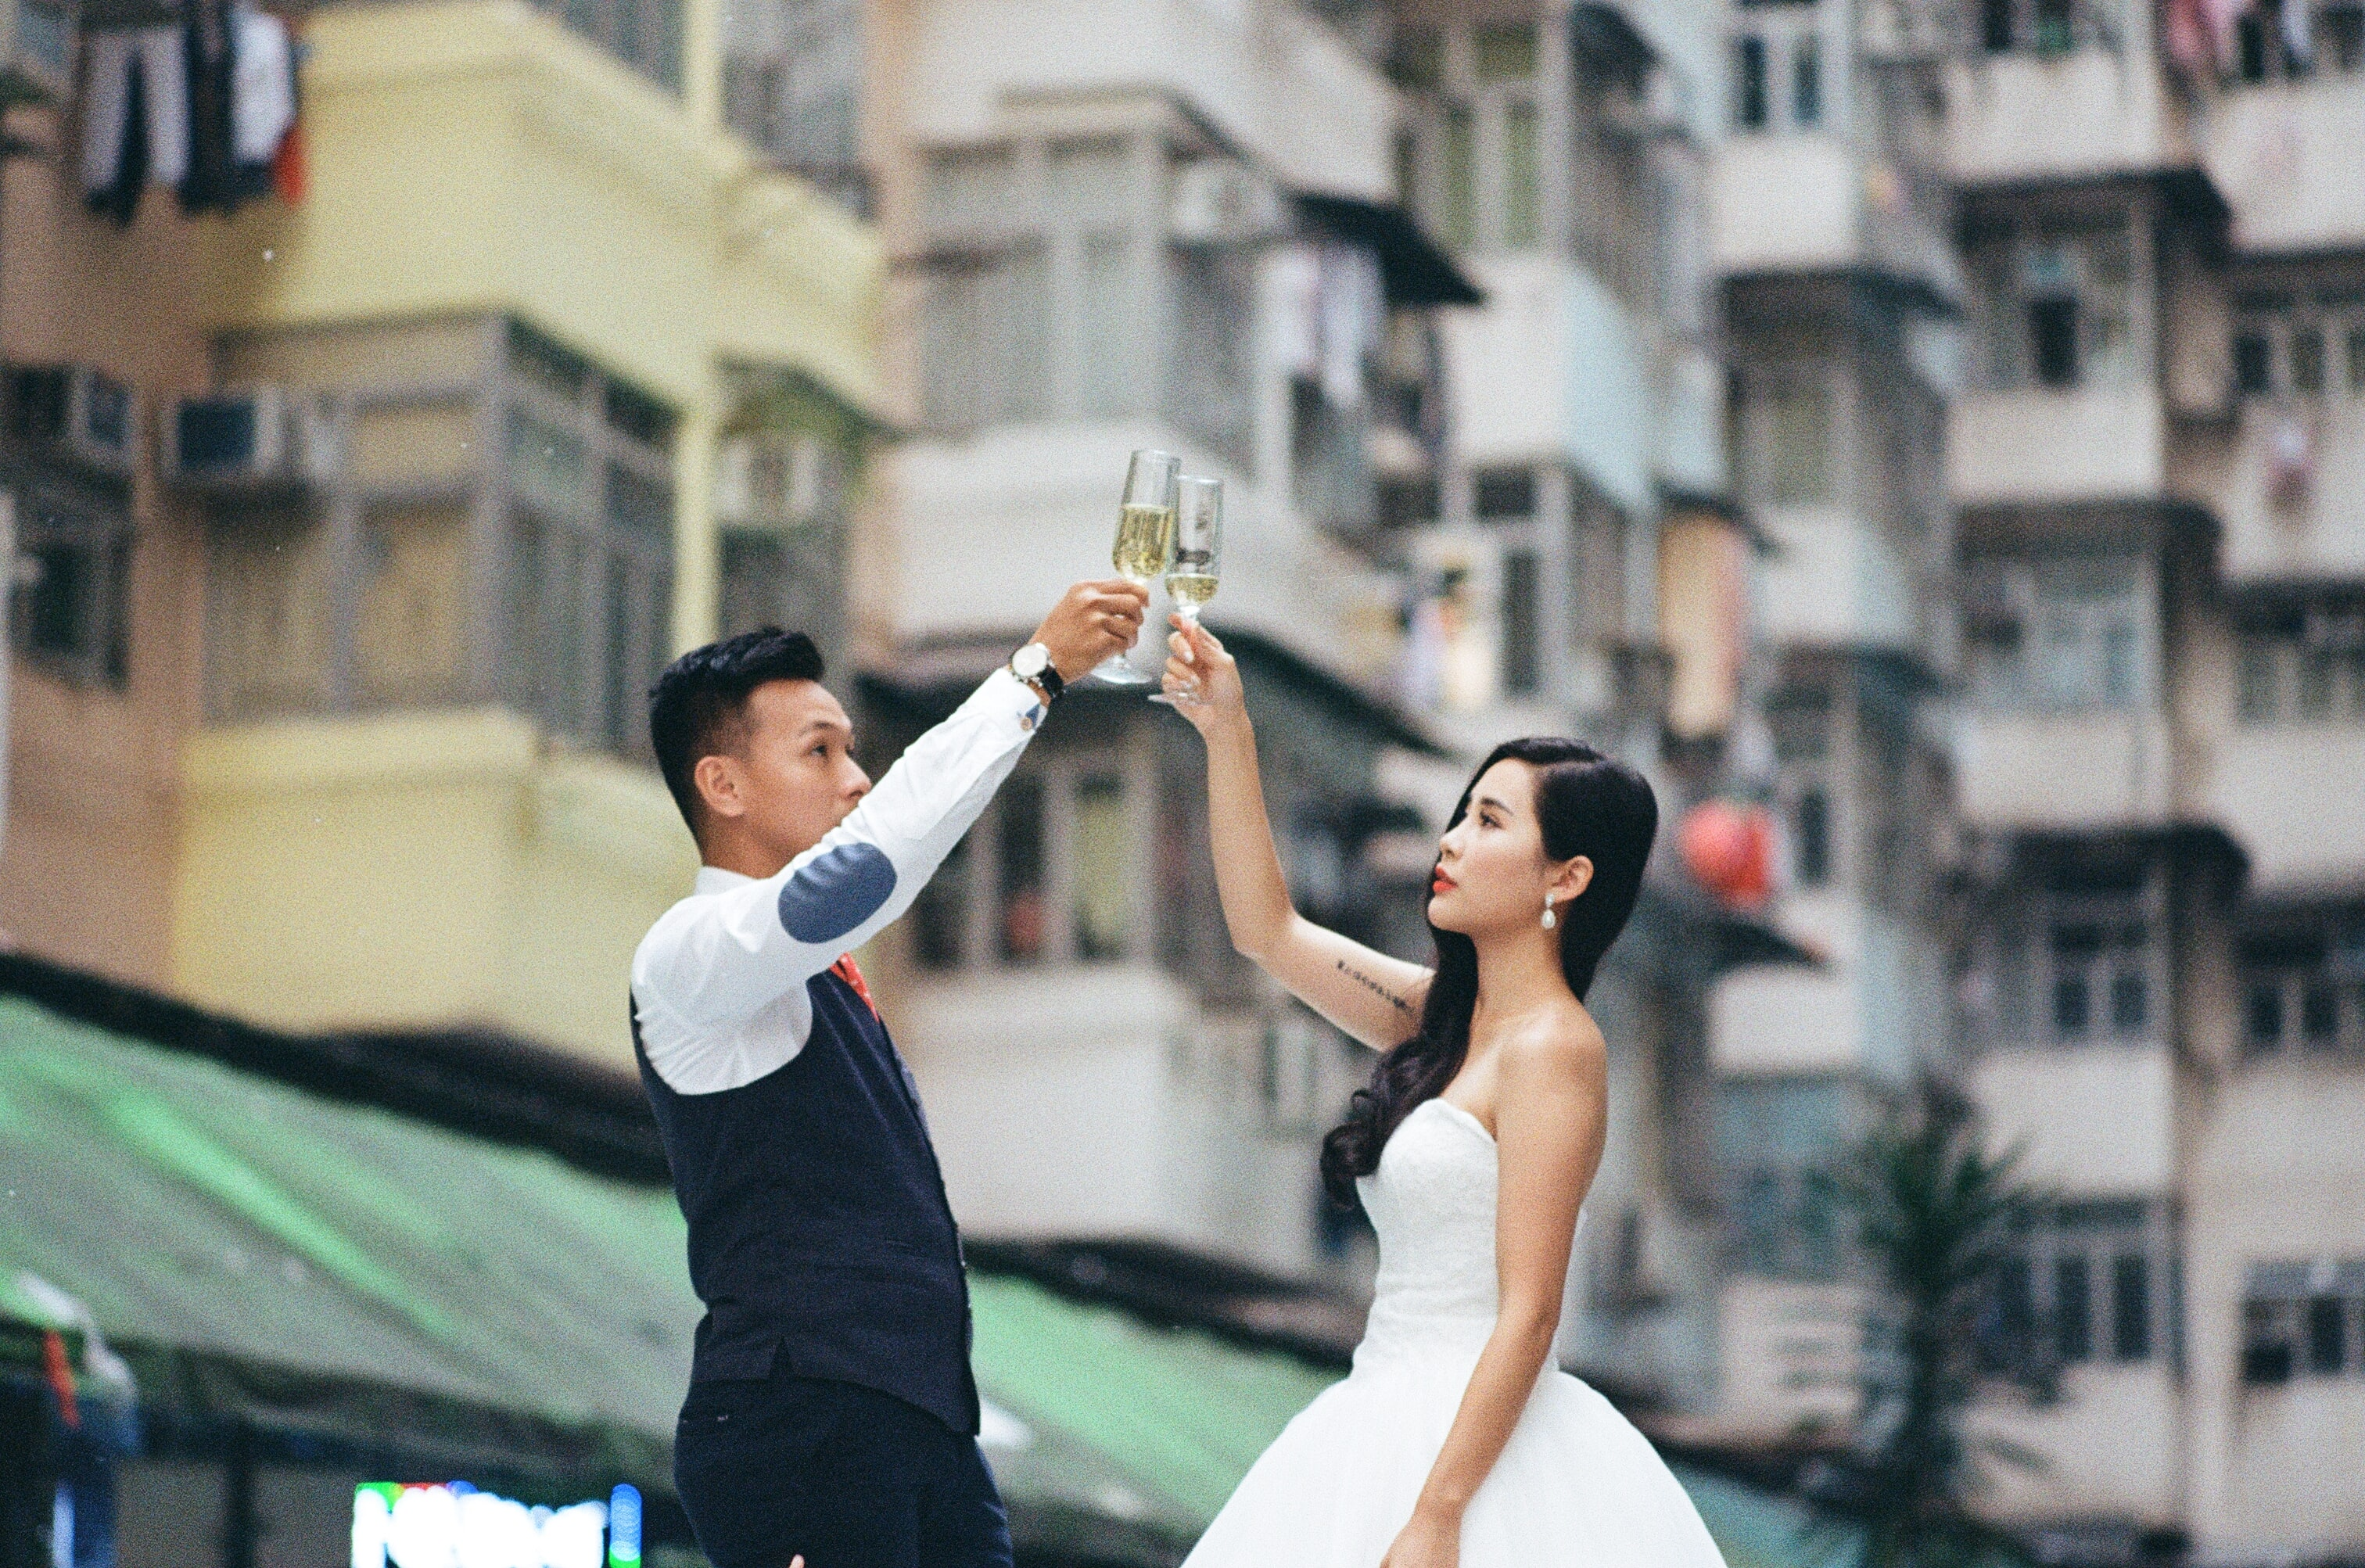 Just-married couple toasts against a city backdrop of high rises